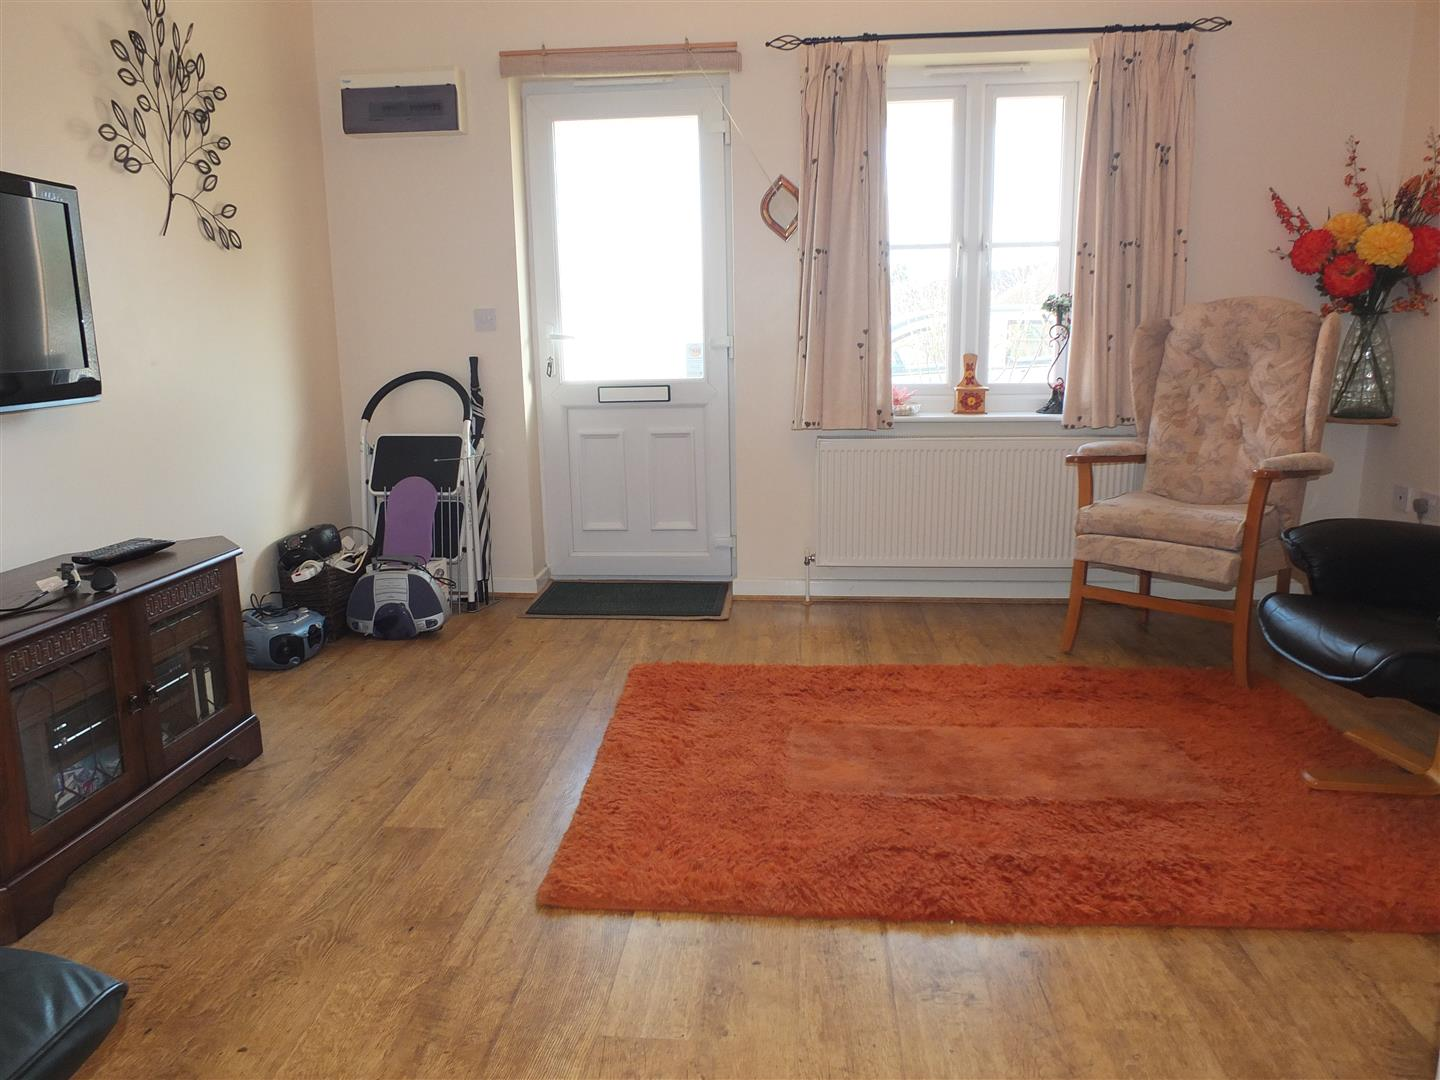 2 bed terraced house to rent in Long Sutton Spalding, PE12 9BF  - Property Image 2